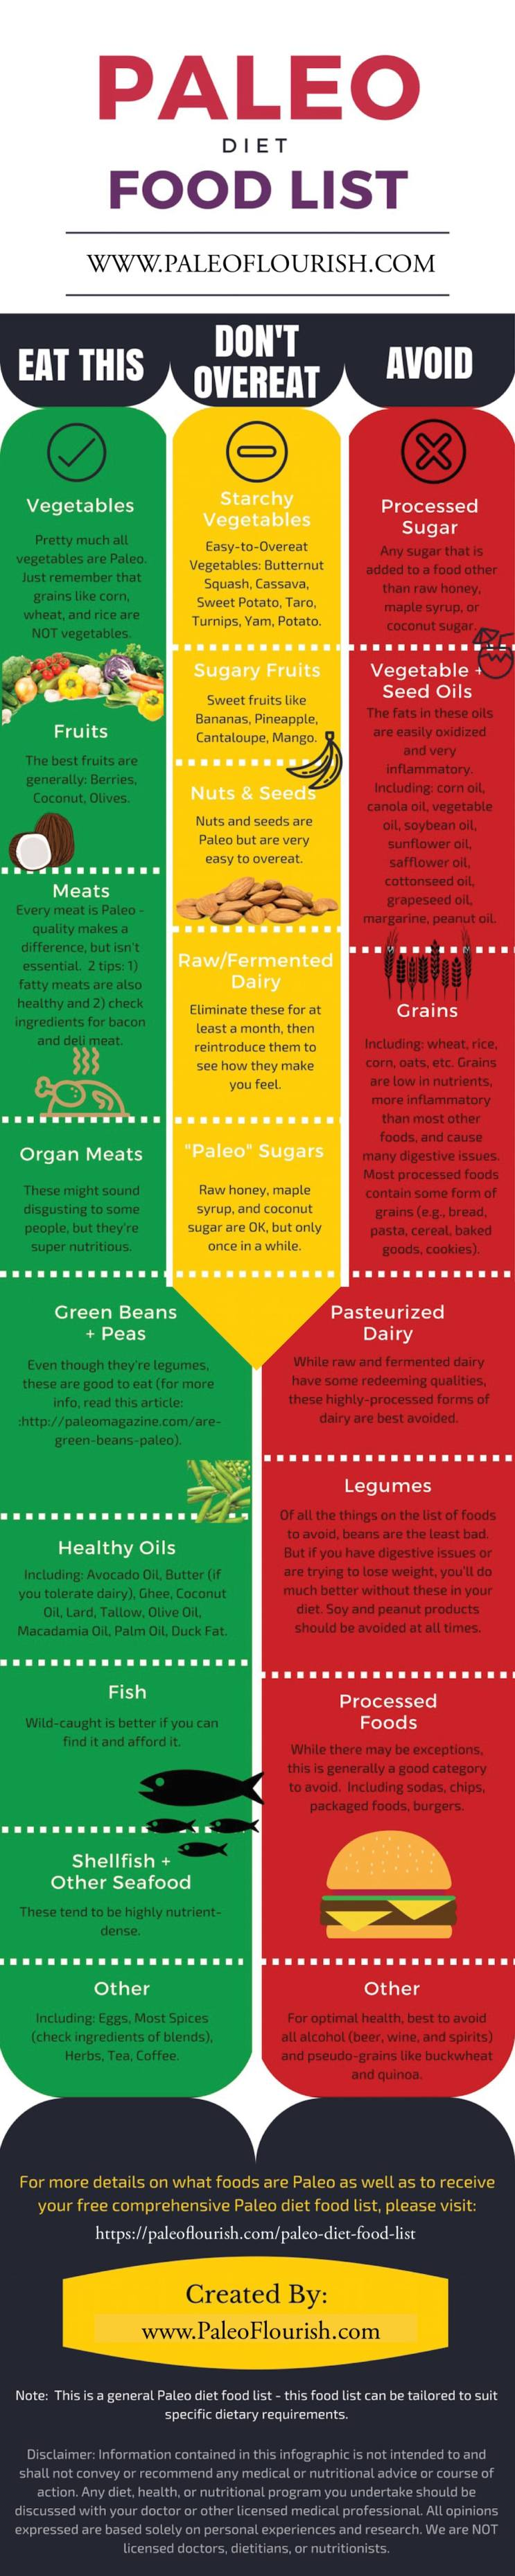 Guest post how to be asian without the rice eating paleo as a paleo diet food list infographic image malvernweather Gallery